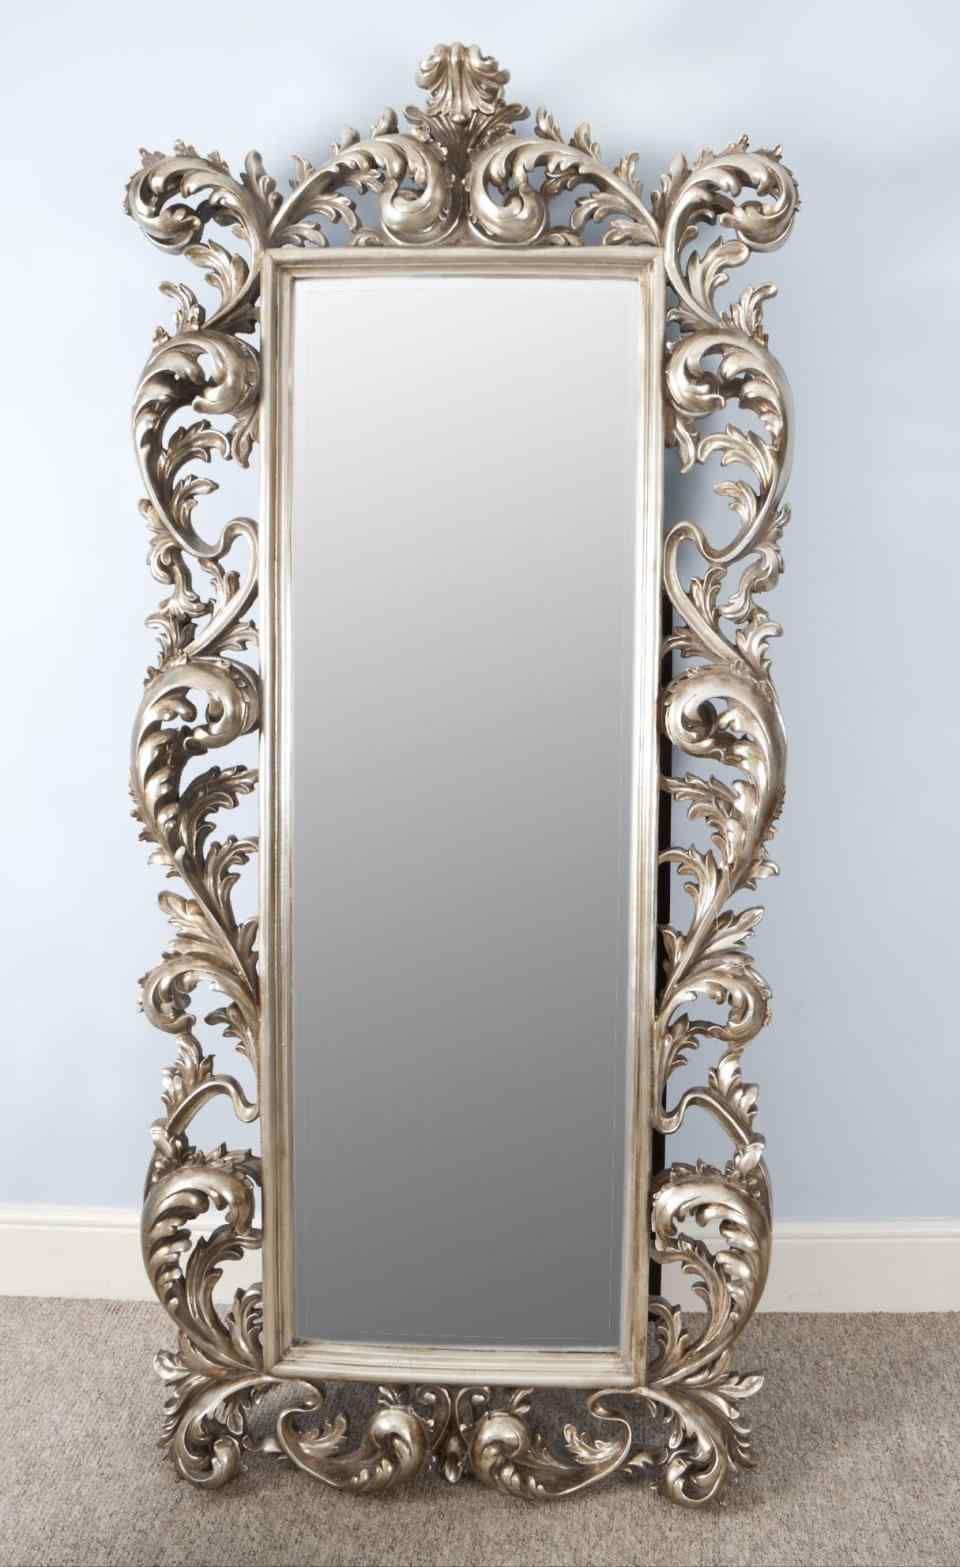 044f1ebd0be Marvelous Incredible 14 Amazing Big Fancy Mirrors Design for Your Home  https   breakpr